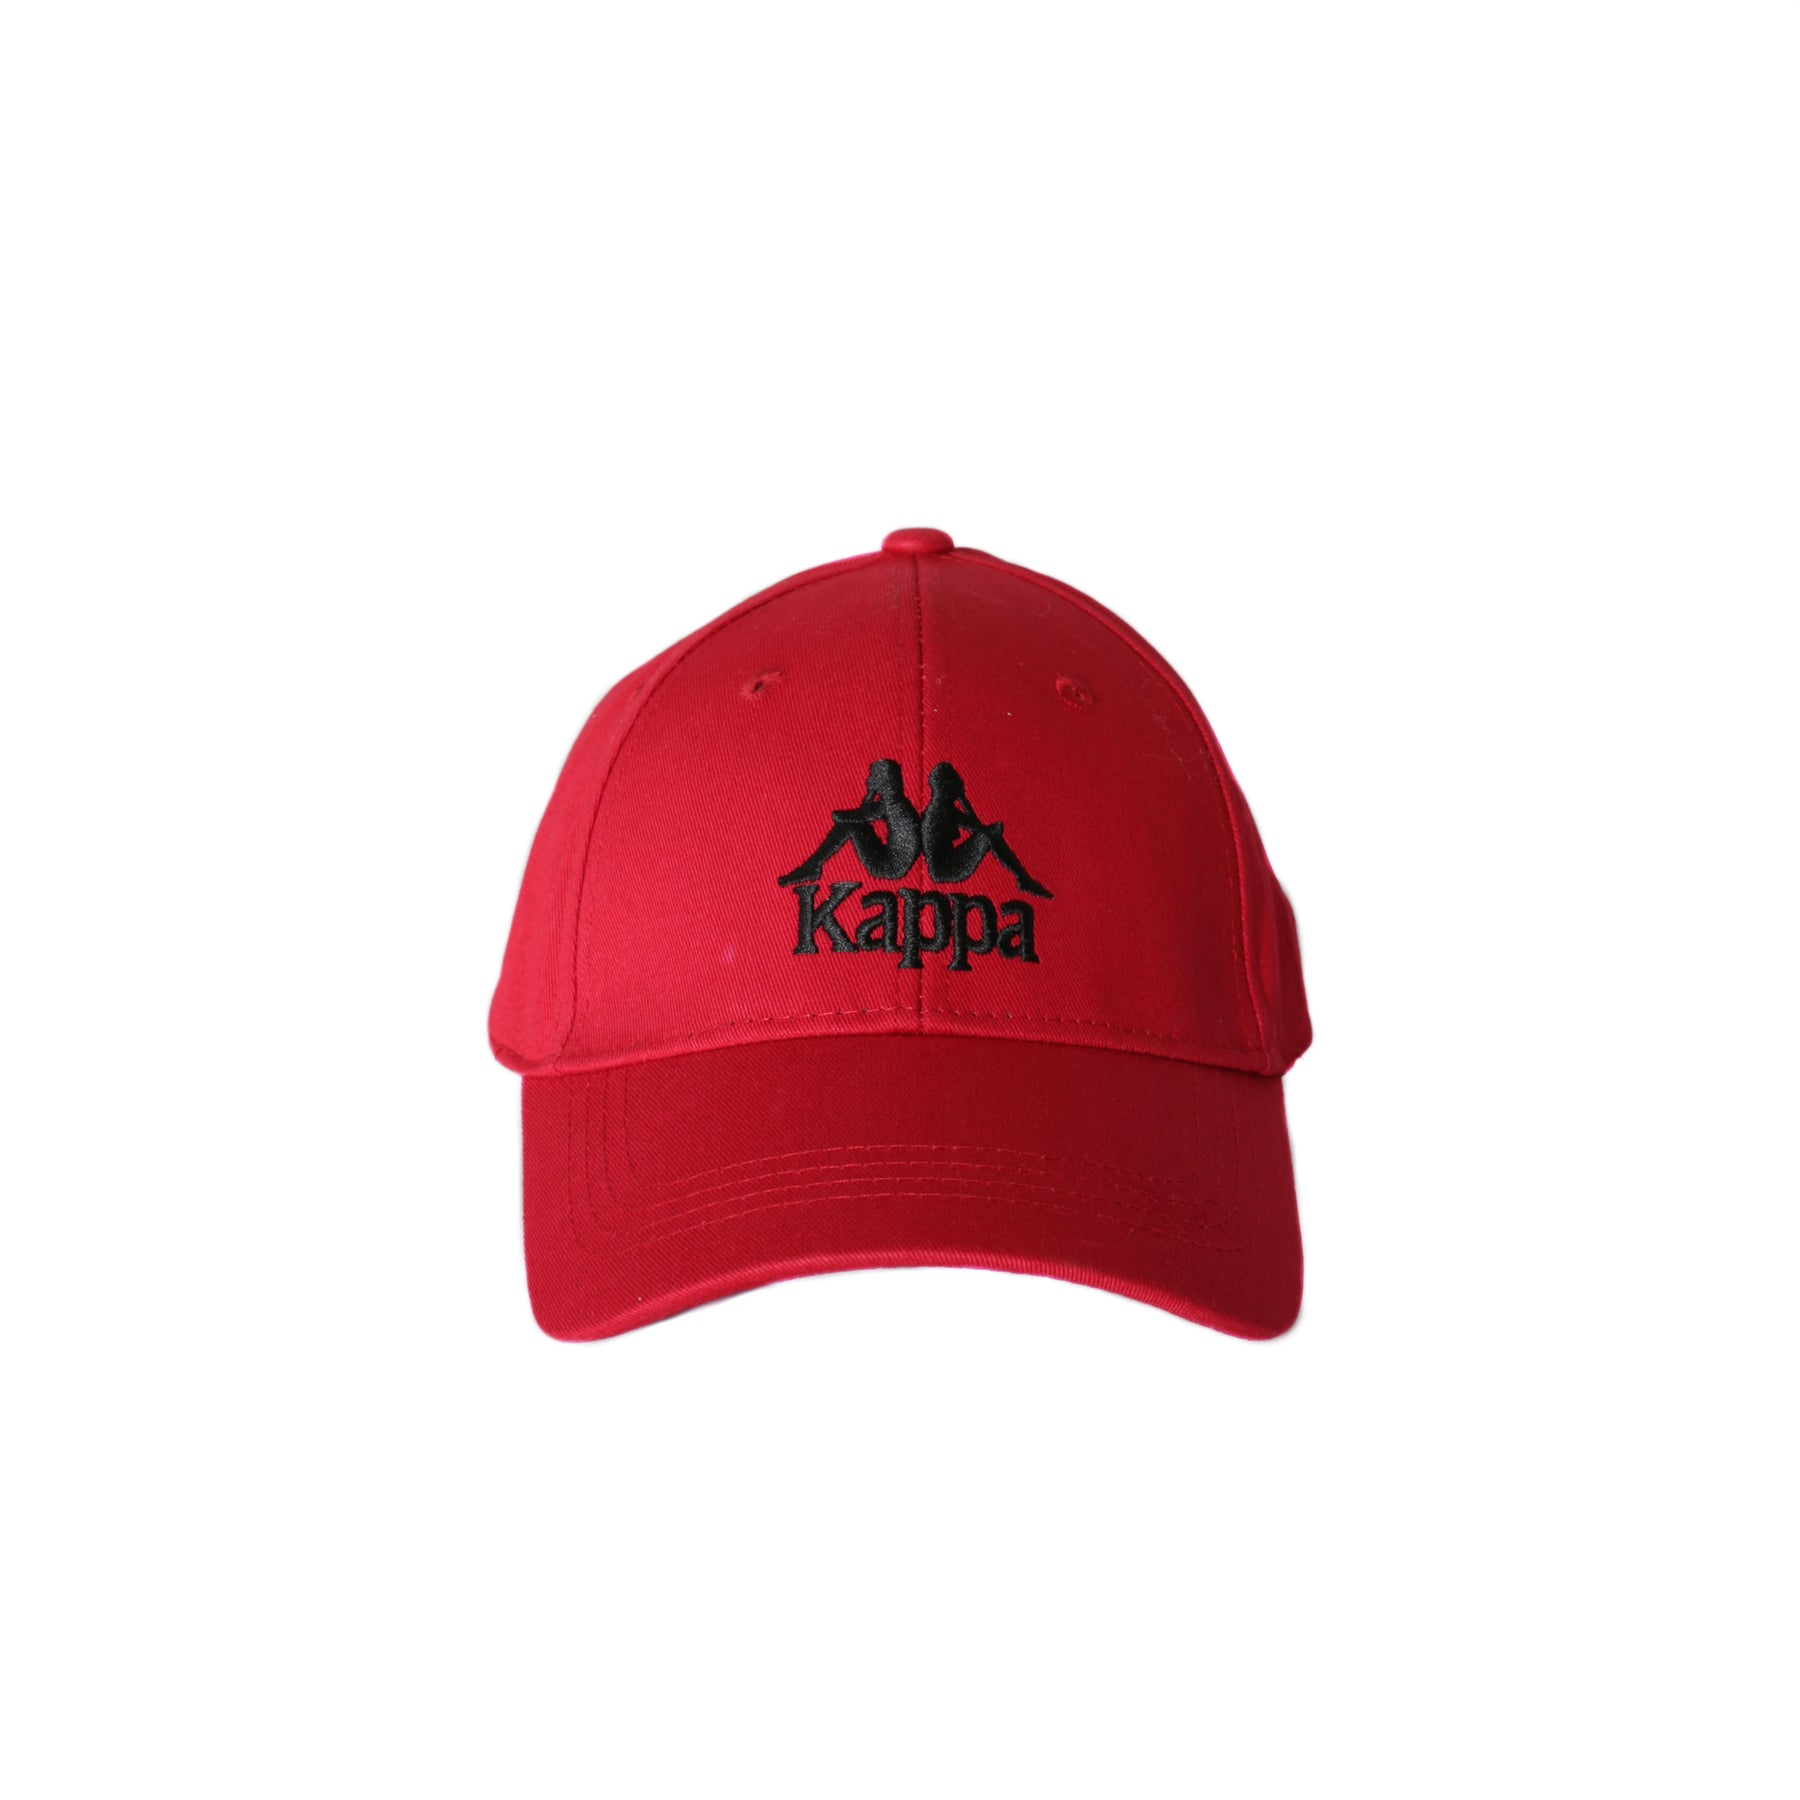 32095d6747 Authentic Bzaftan Red Dk Black Cap – Kappa USA